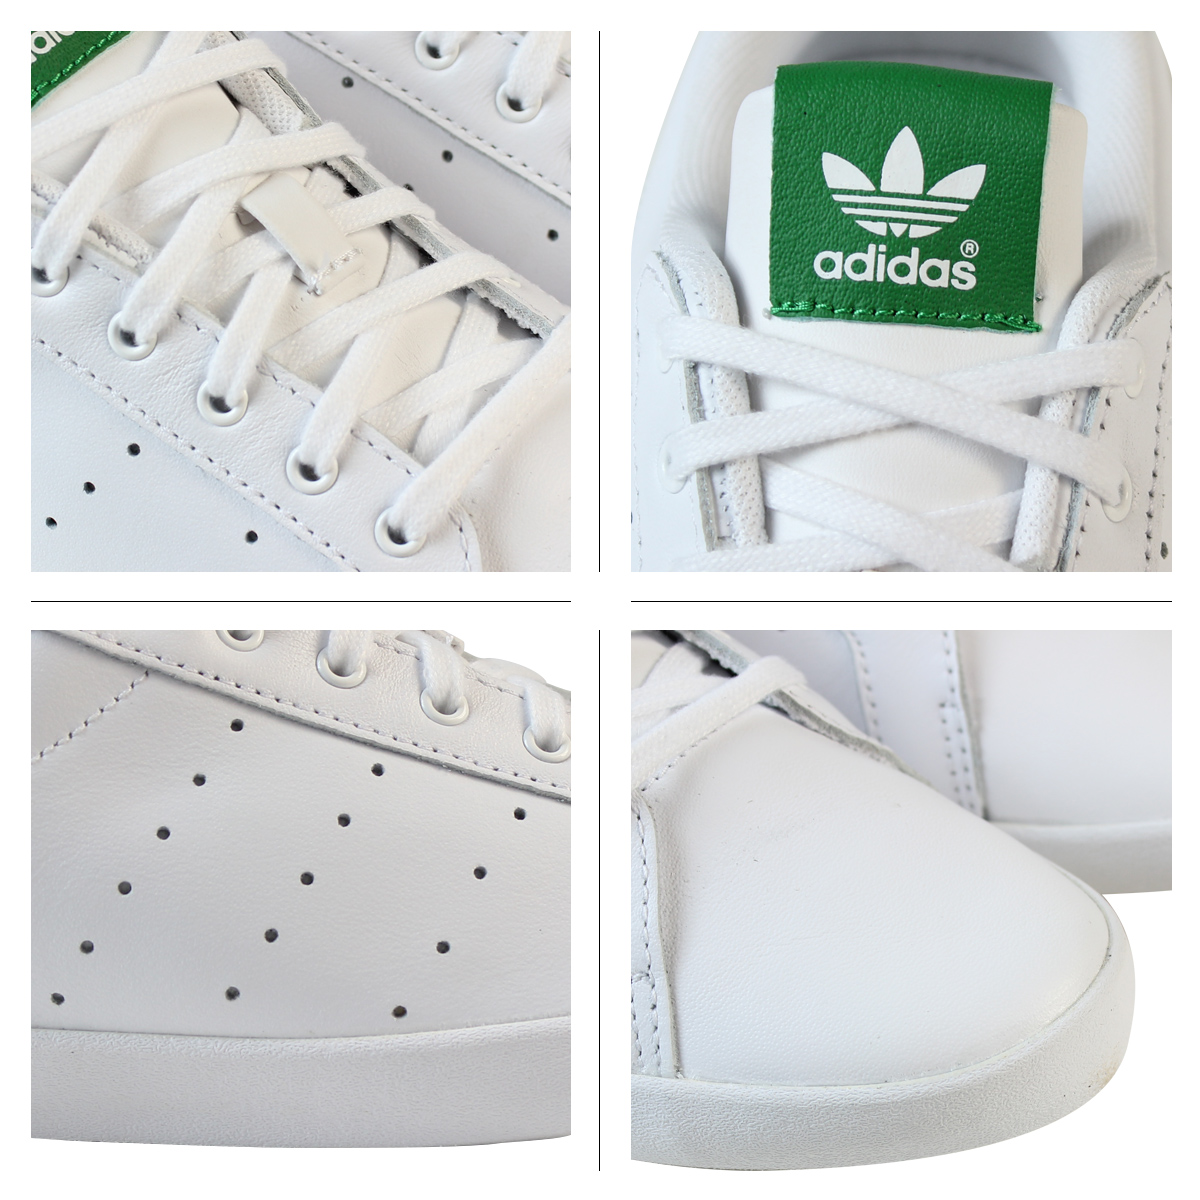 Adidas originals adidas Originals STAN SMITH sneakers Stan Smith leather men's M20326 White x Red [8 / 14 back in stock] [regular]